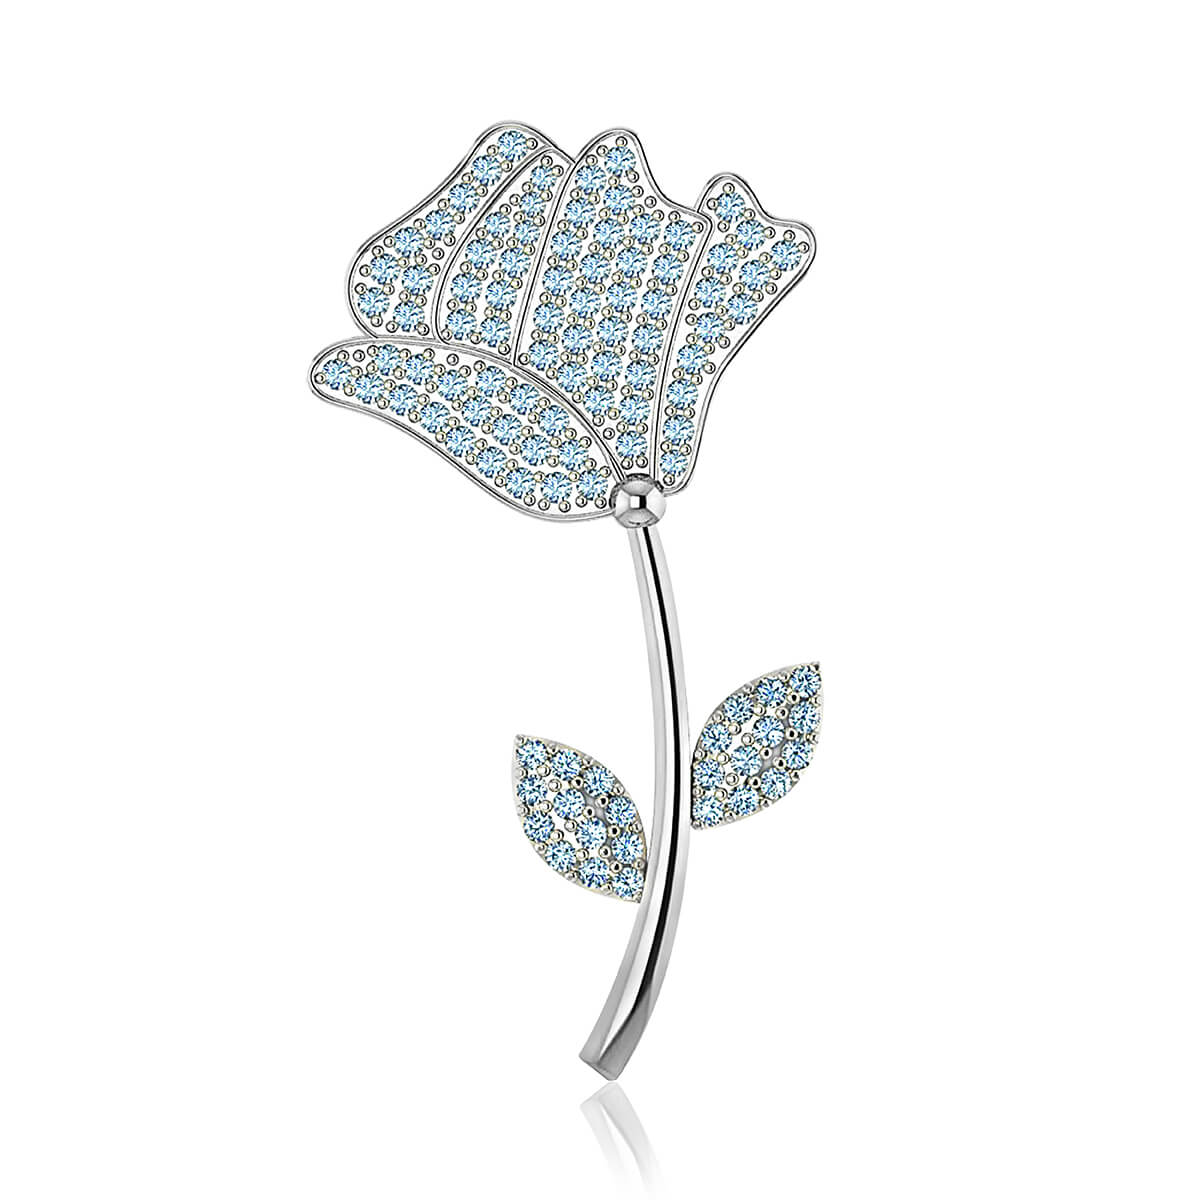 Tulip Diamond Brooch (1 CT. TW.)